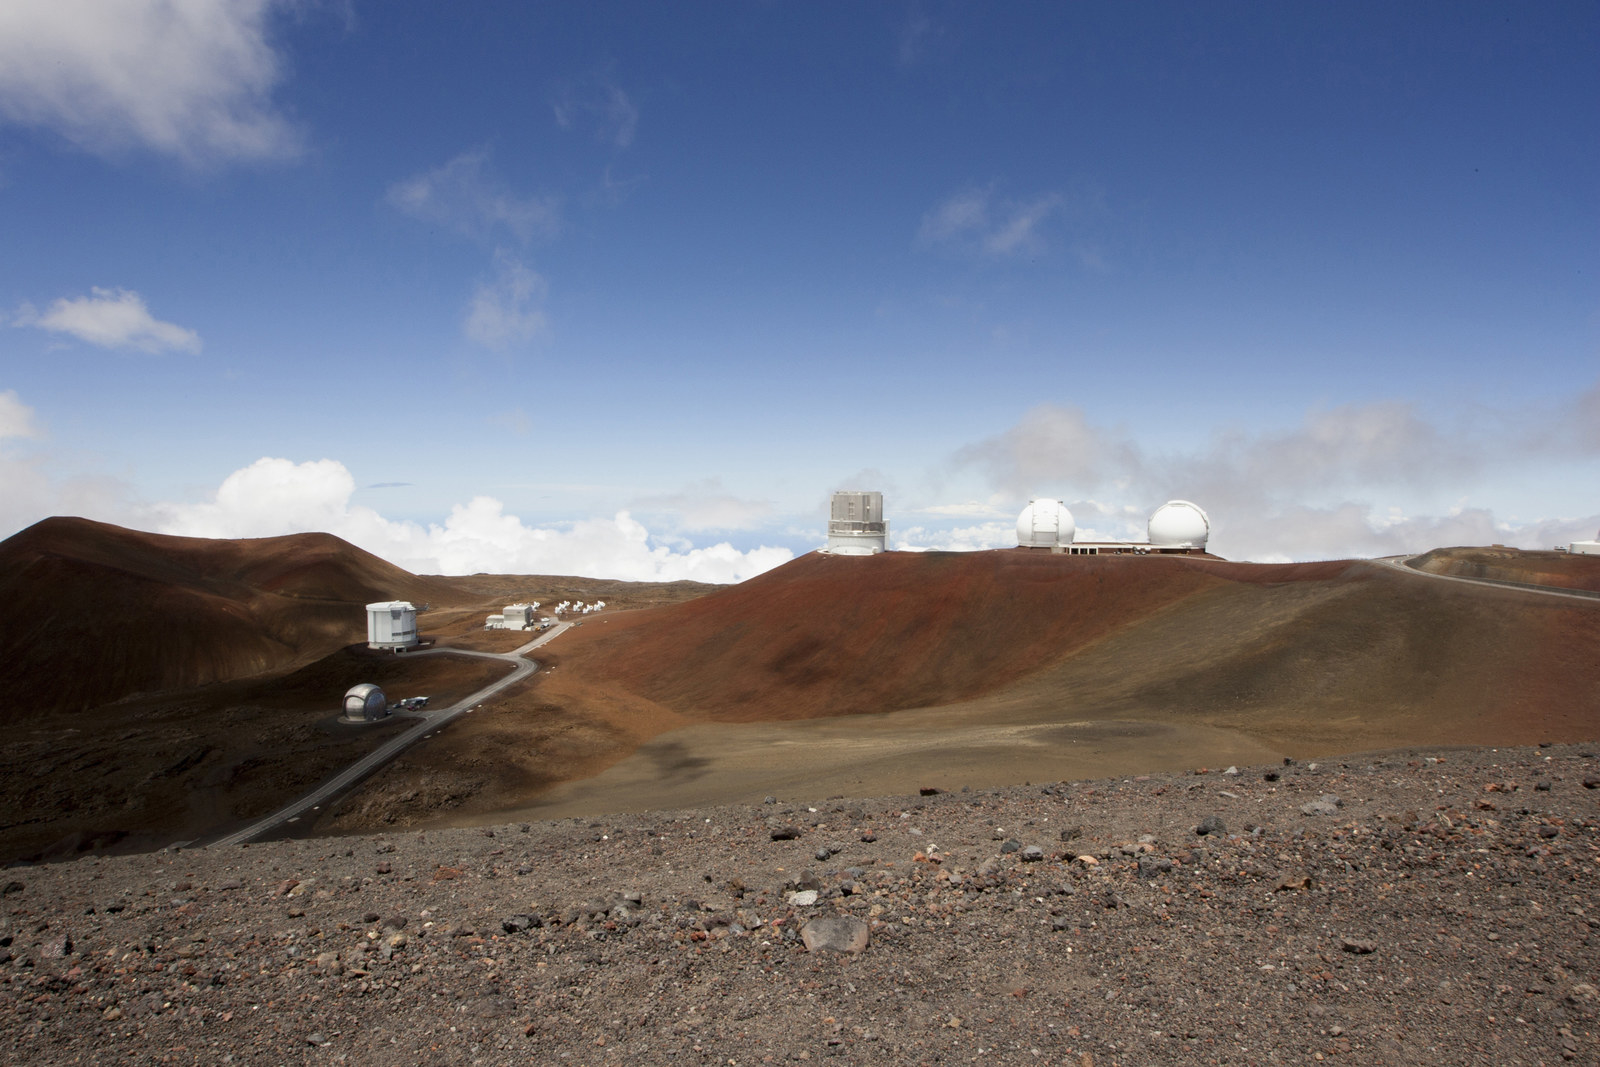 A Judge In Hawaii Has Recommended That A Controversial Telescope Project Be Allowed To Move Forward